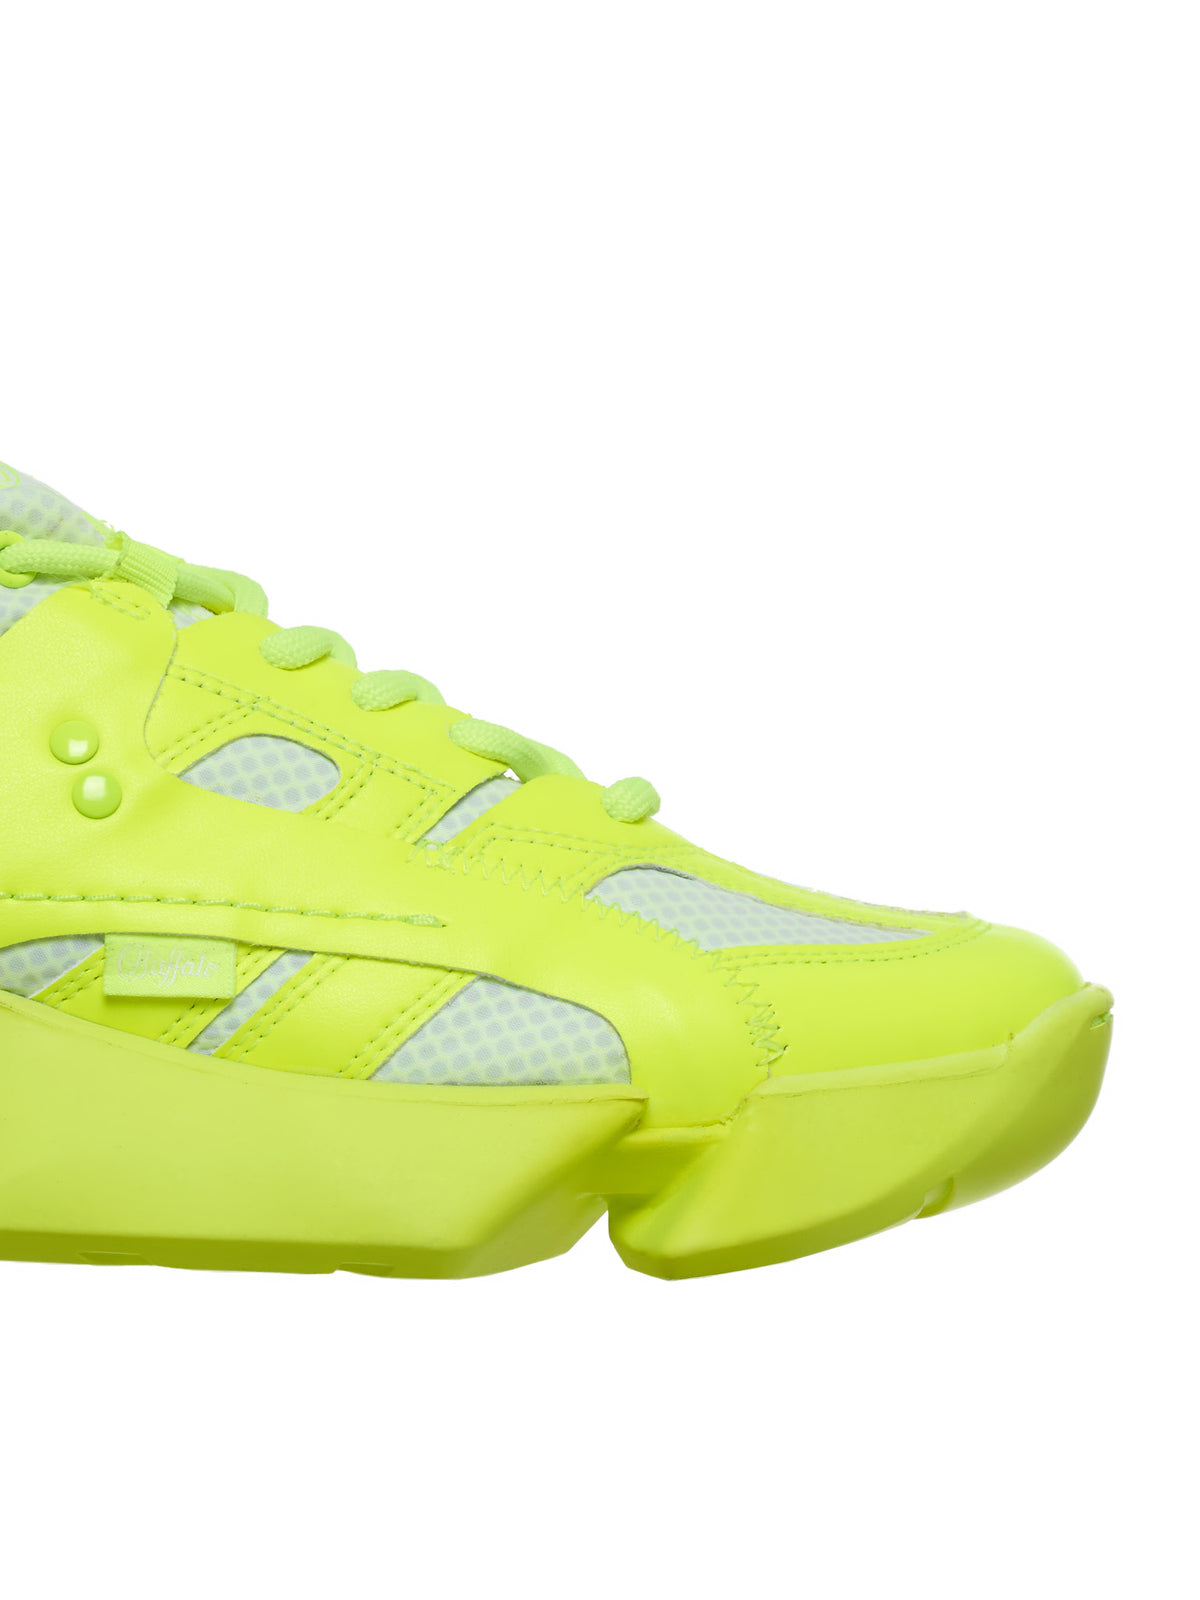 Mesh Panel Sneakers (JE-K102-S20-NEON-YELLOW)